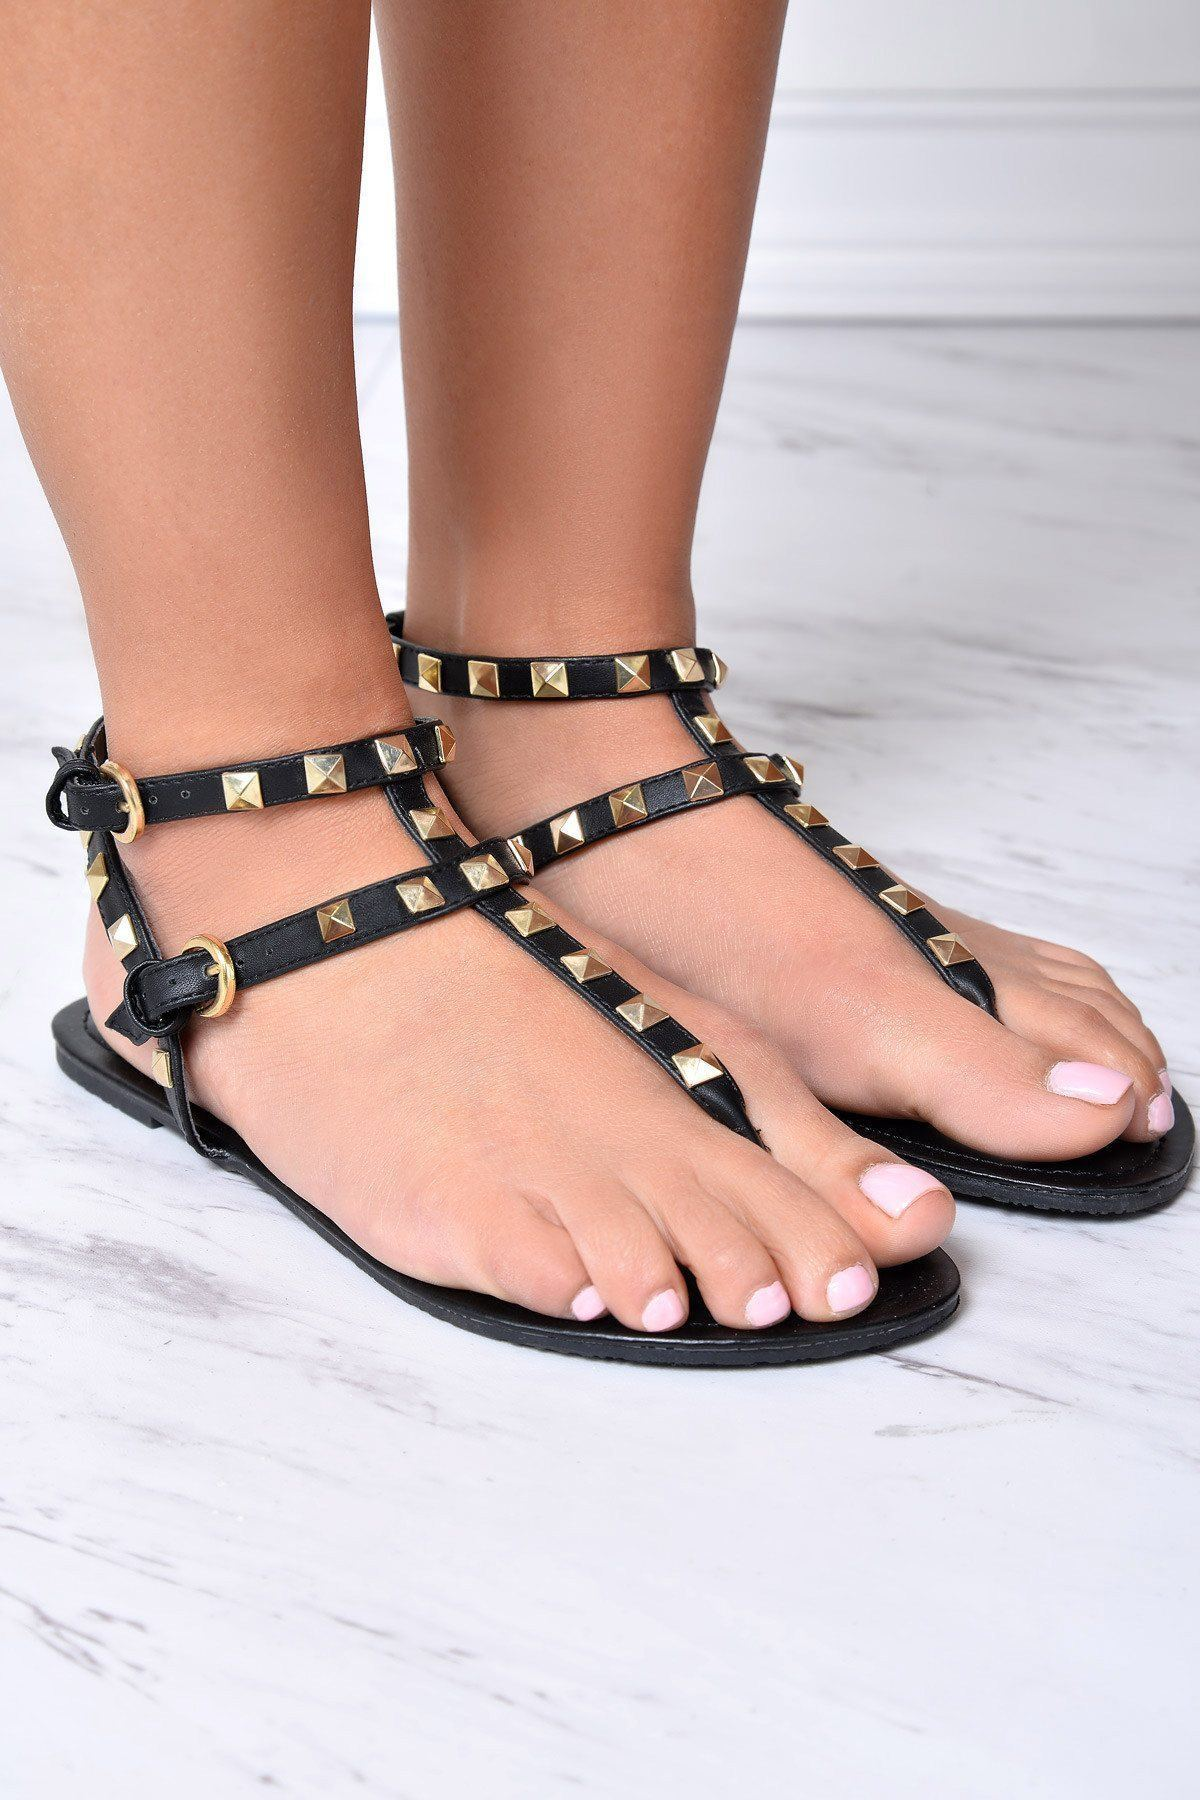 First Class Black Sandals - Fashion Effect Store  - 2